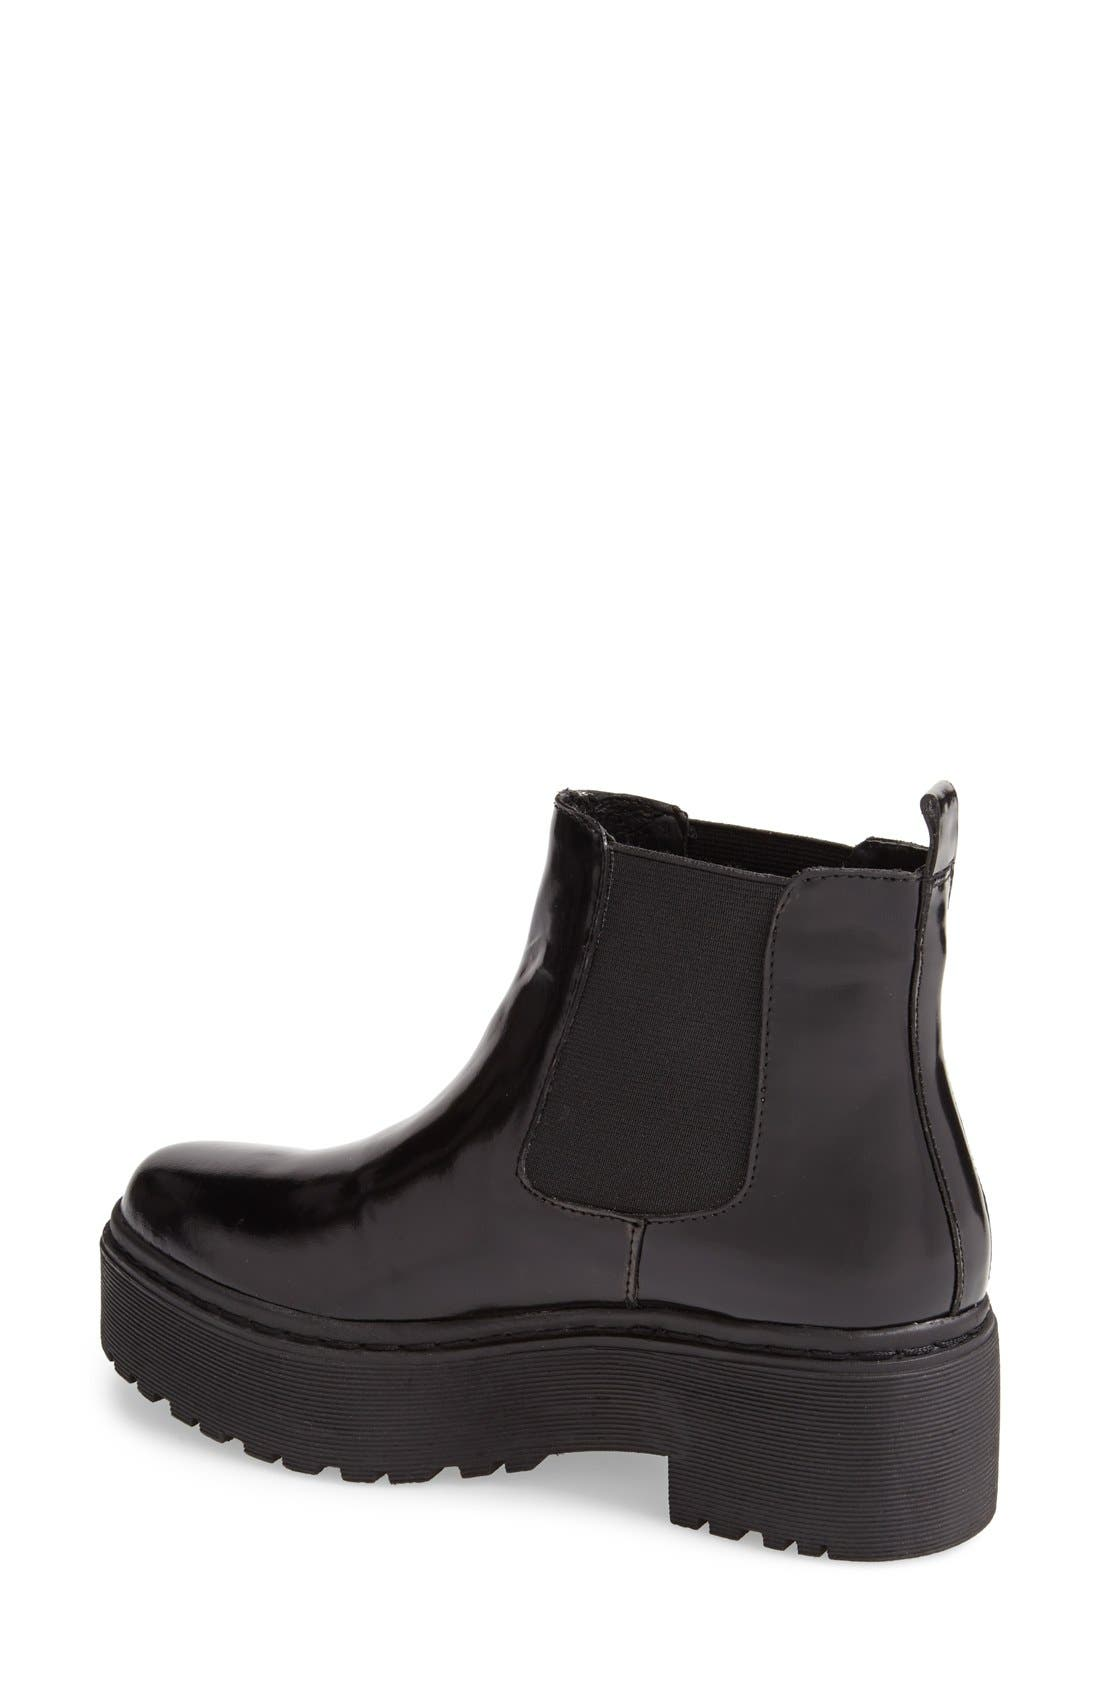 JEFFREY CAMPBELL,                             'Universal' Chelsea Boot,                             Alternate thumbnail 3, color,                             001